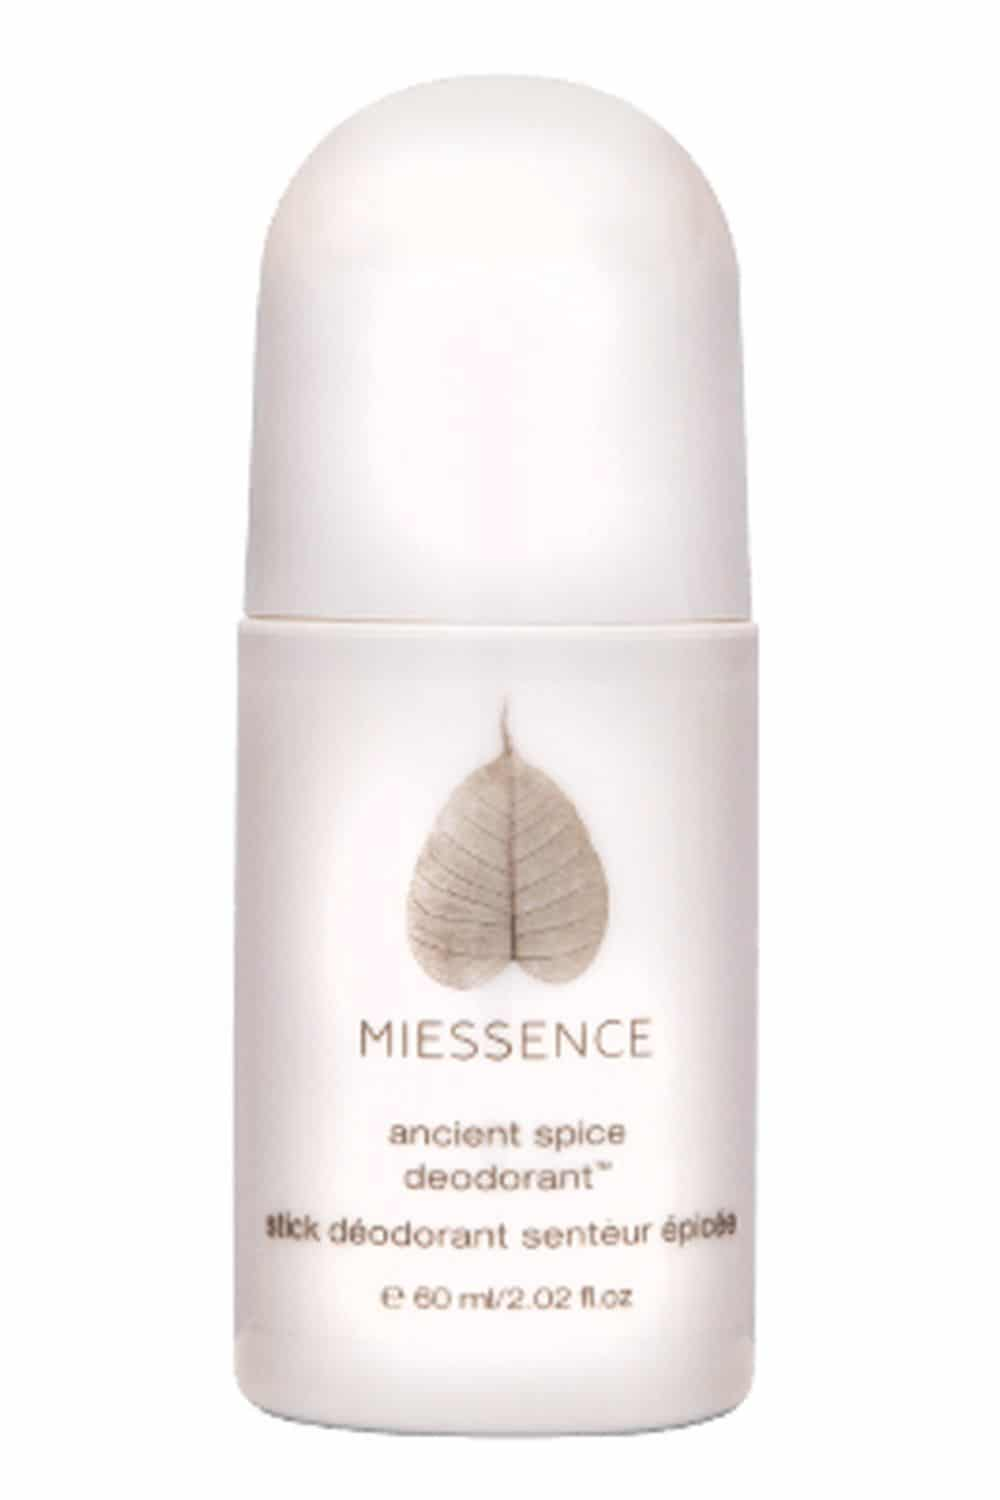 The ethical personal care market has exploded with options in the last few years which is great. The problem though, is trying to find eco friendly deodorants that are effective. So, we've made a list of our favorites that are fit for purpose! Image by Miessence #ecofriendlydeodorant #sustainablejungle